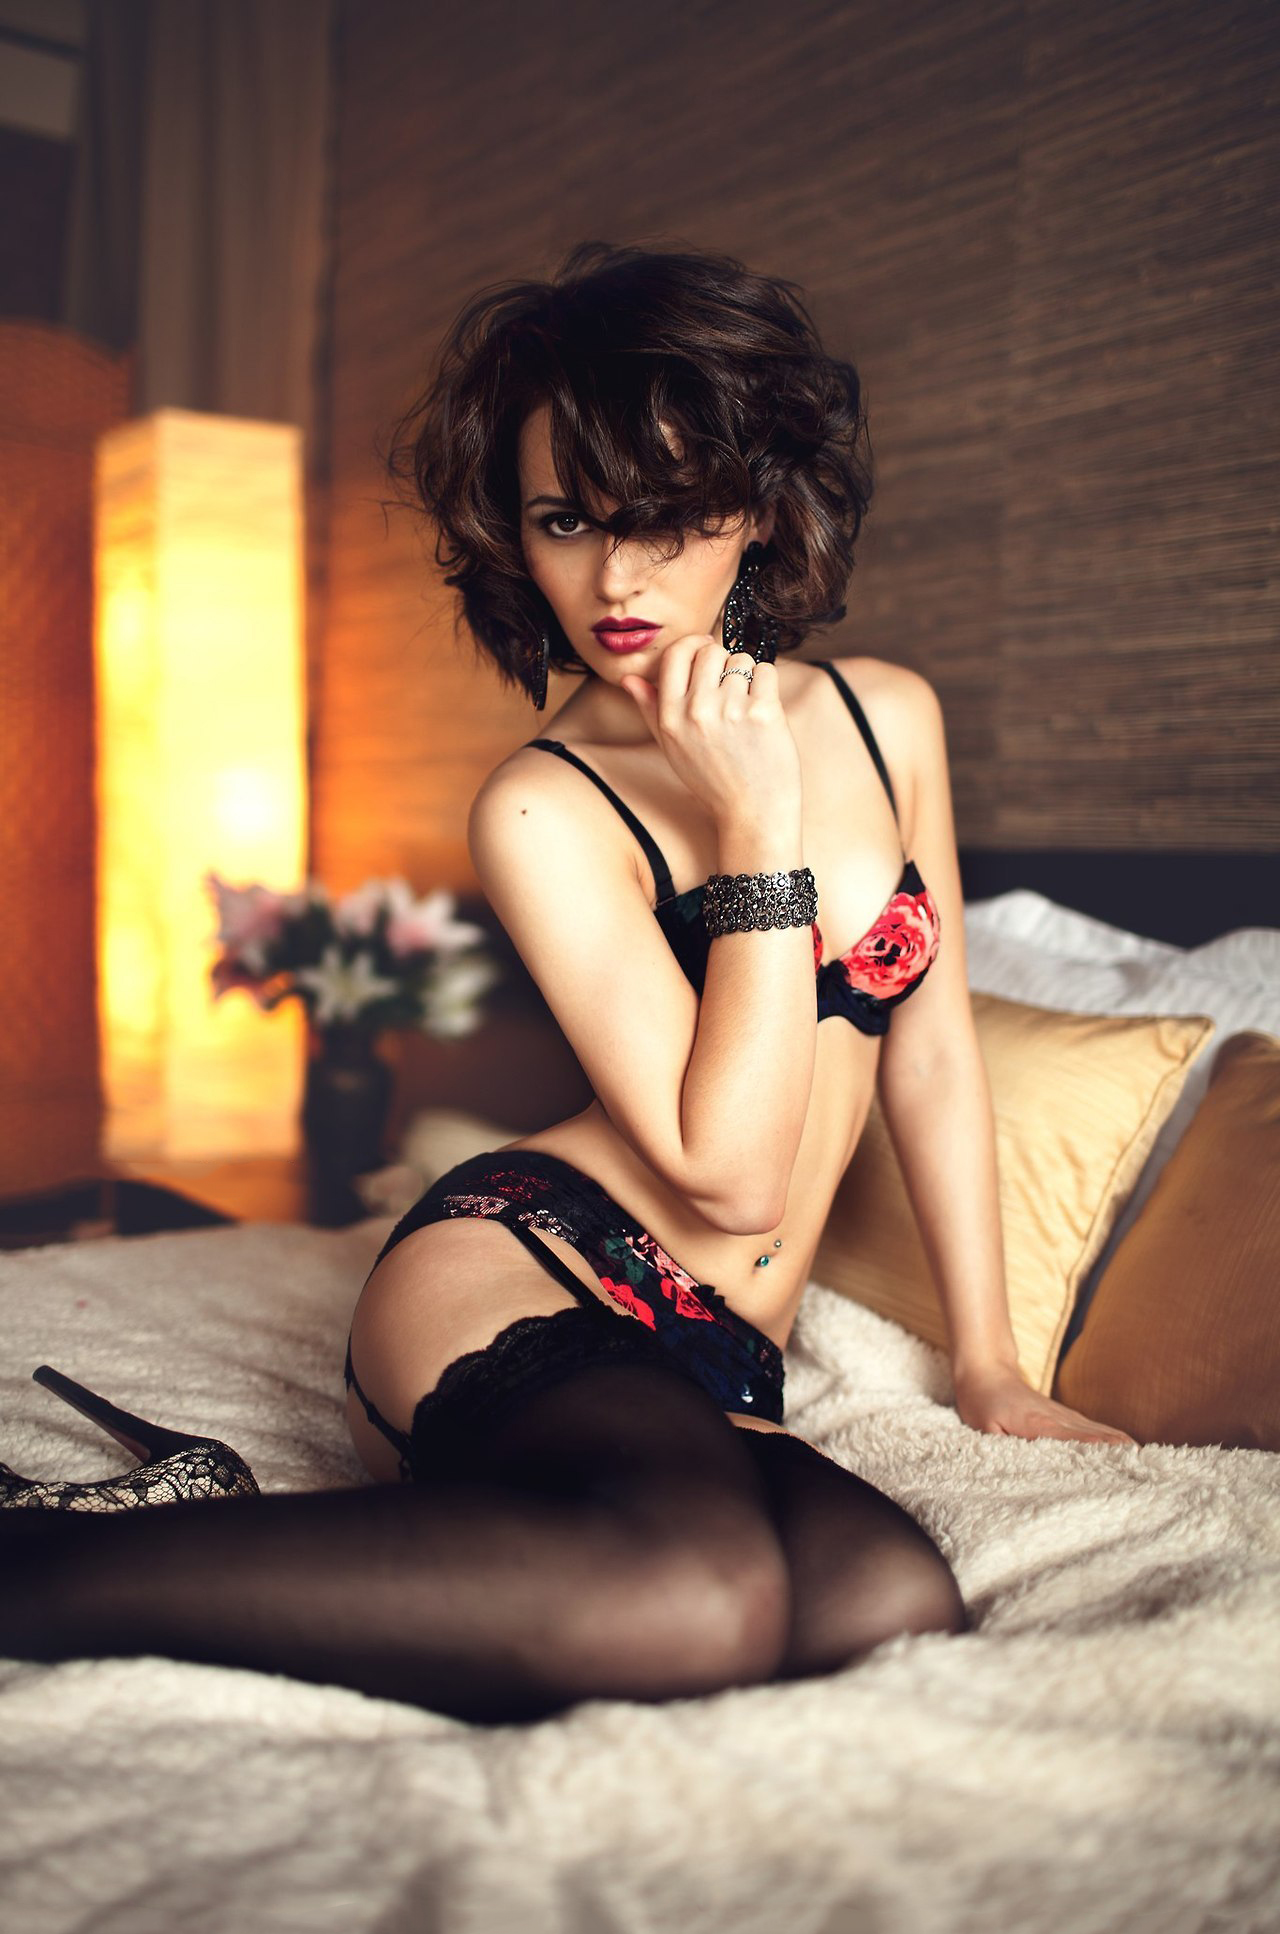 where can i my used underwear and sexy women in satin lingerie